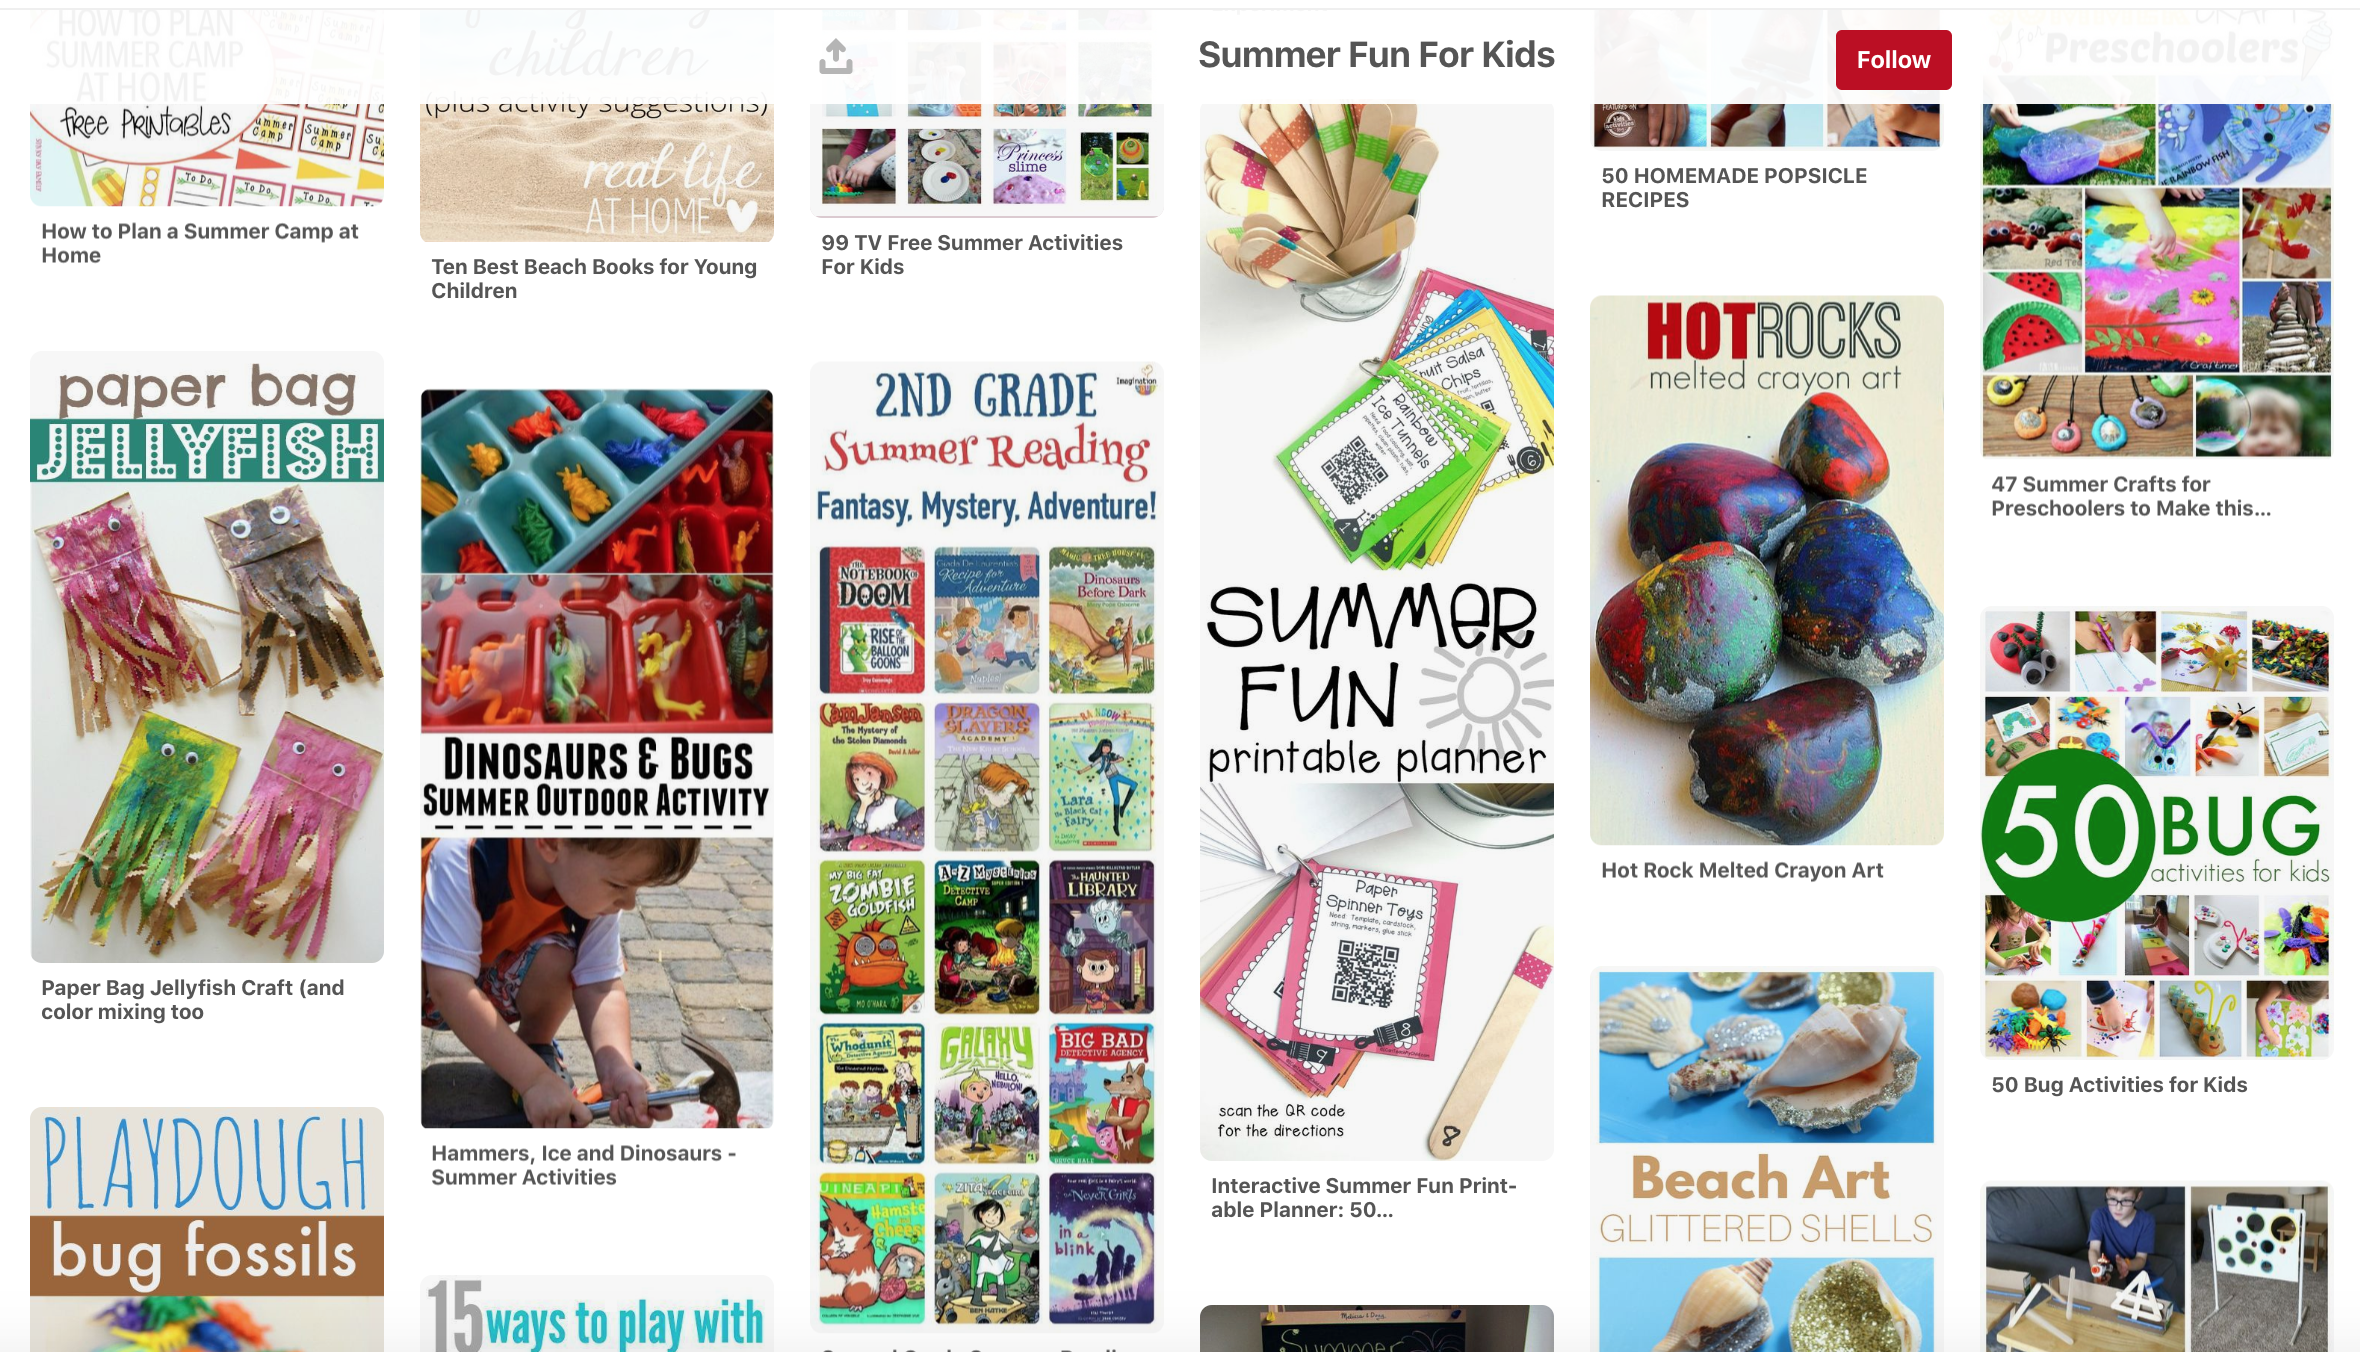 This fun board has more game ideas, book ideas, science activities, and summer food. This board is one of my favorites.